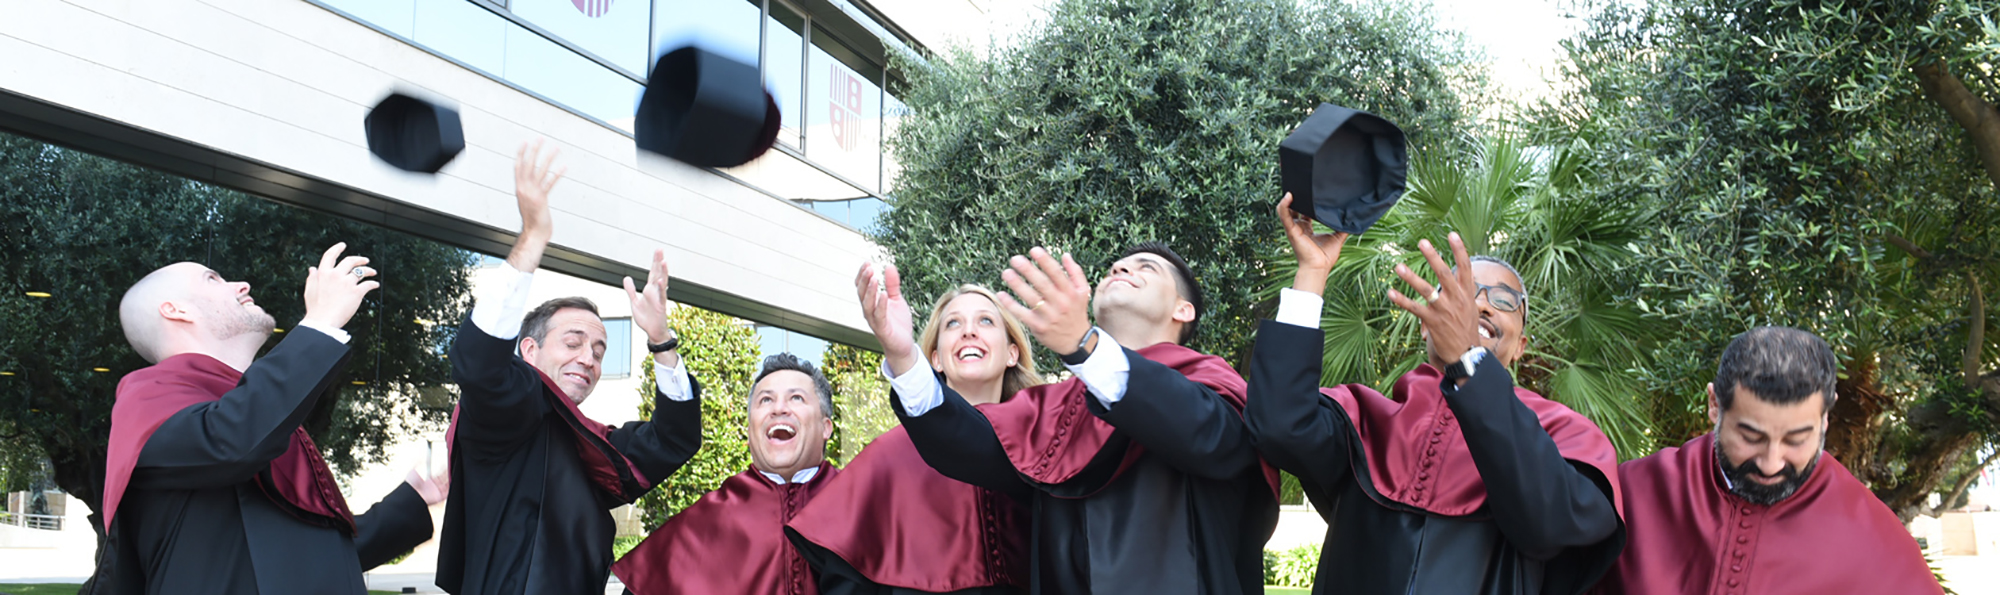 Iese S Gemba Is Global Experiential And Transformational Iese A